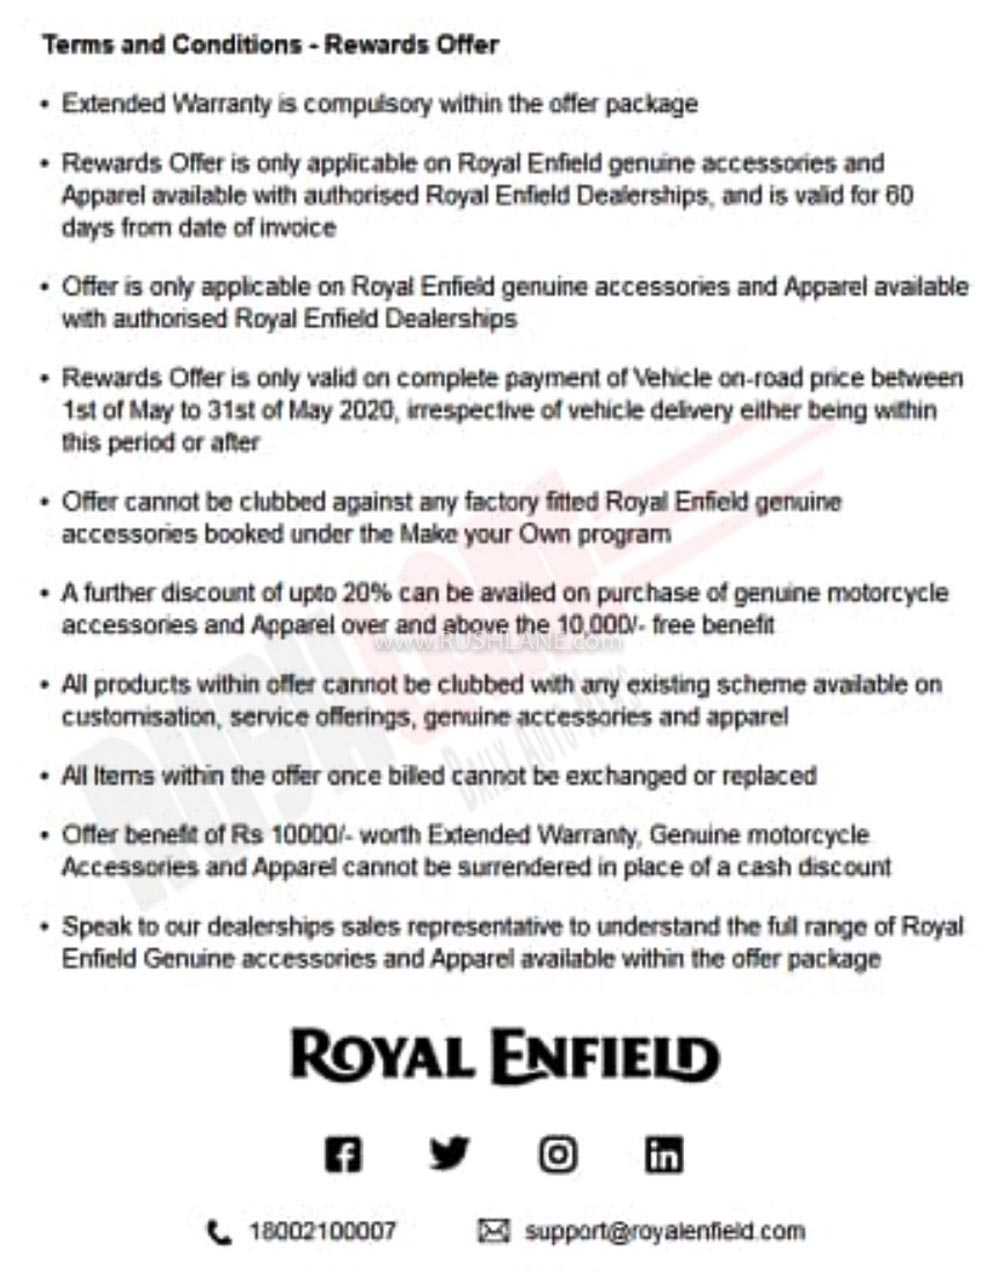 Royal Enfield Free accessories